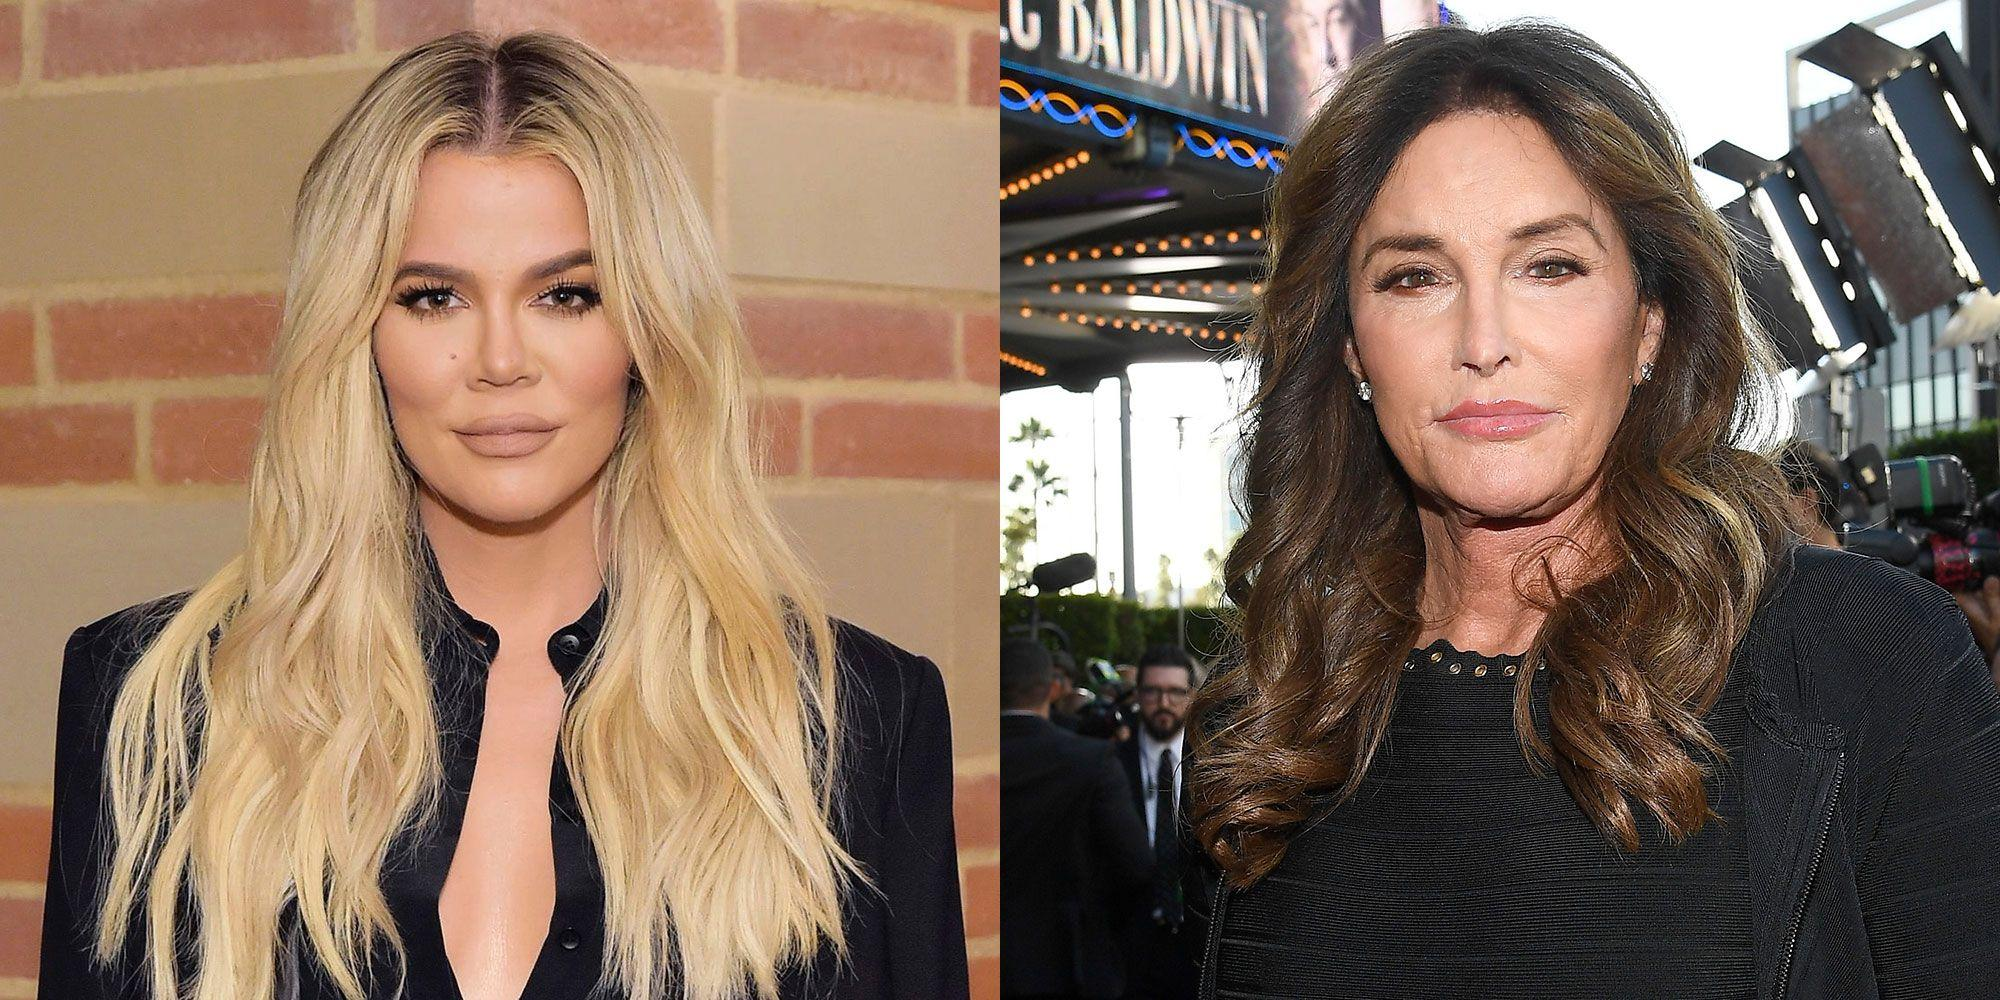 KUWK: Khloe Kardashian 'Confused' After Caitlyn Jenner Revealed They Haven't Been On Speaking Terms For Years